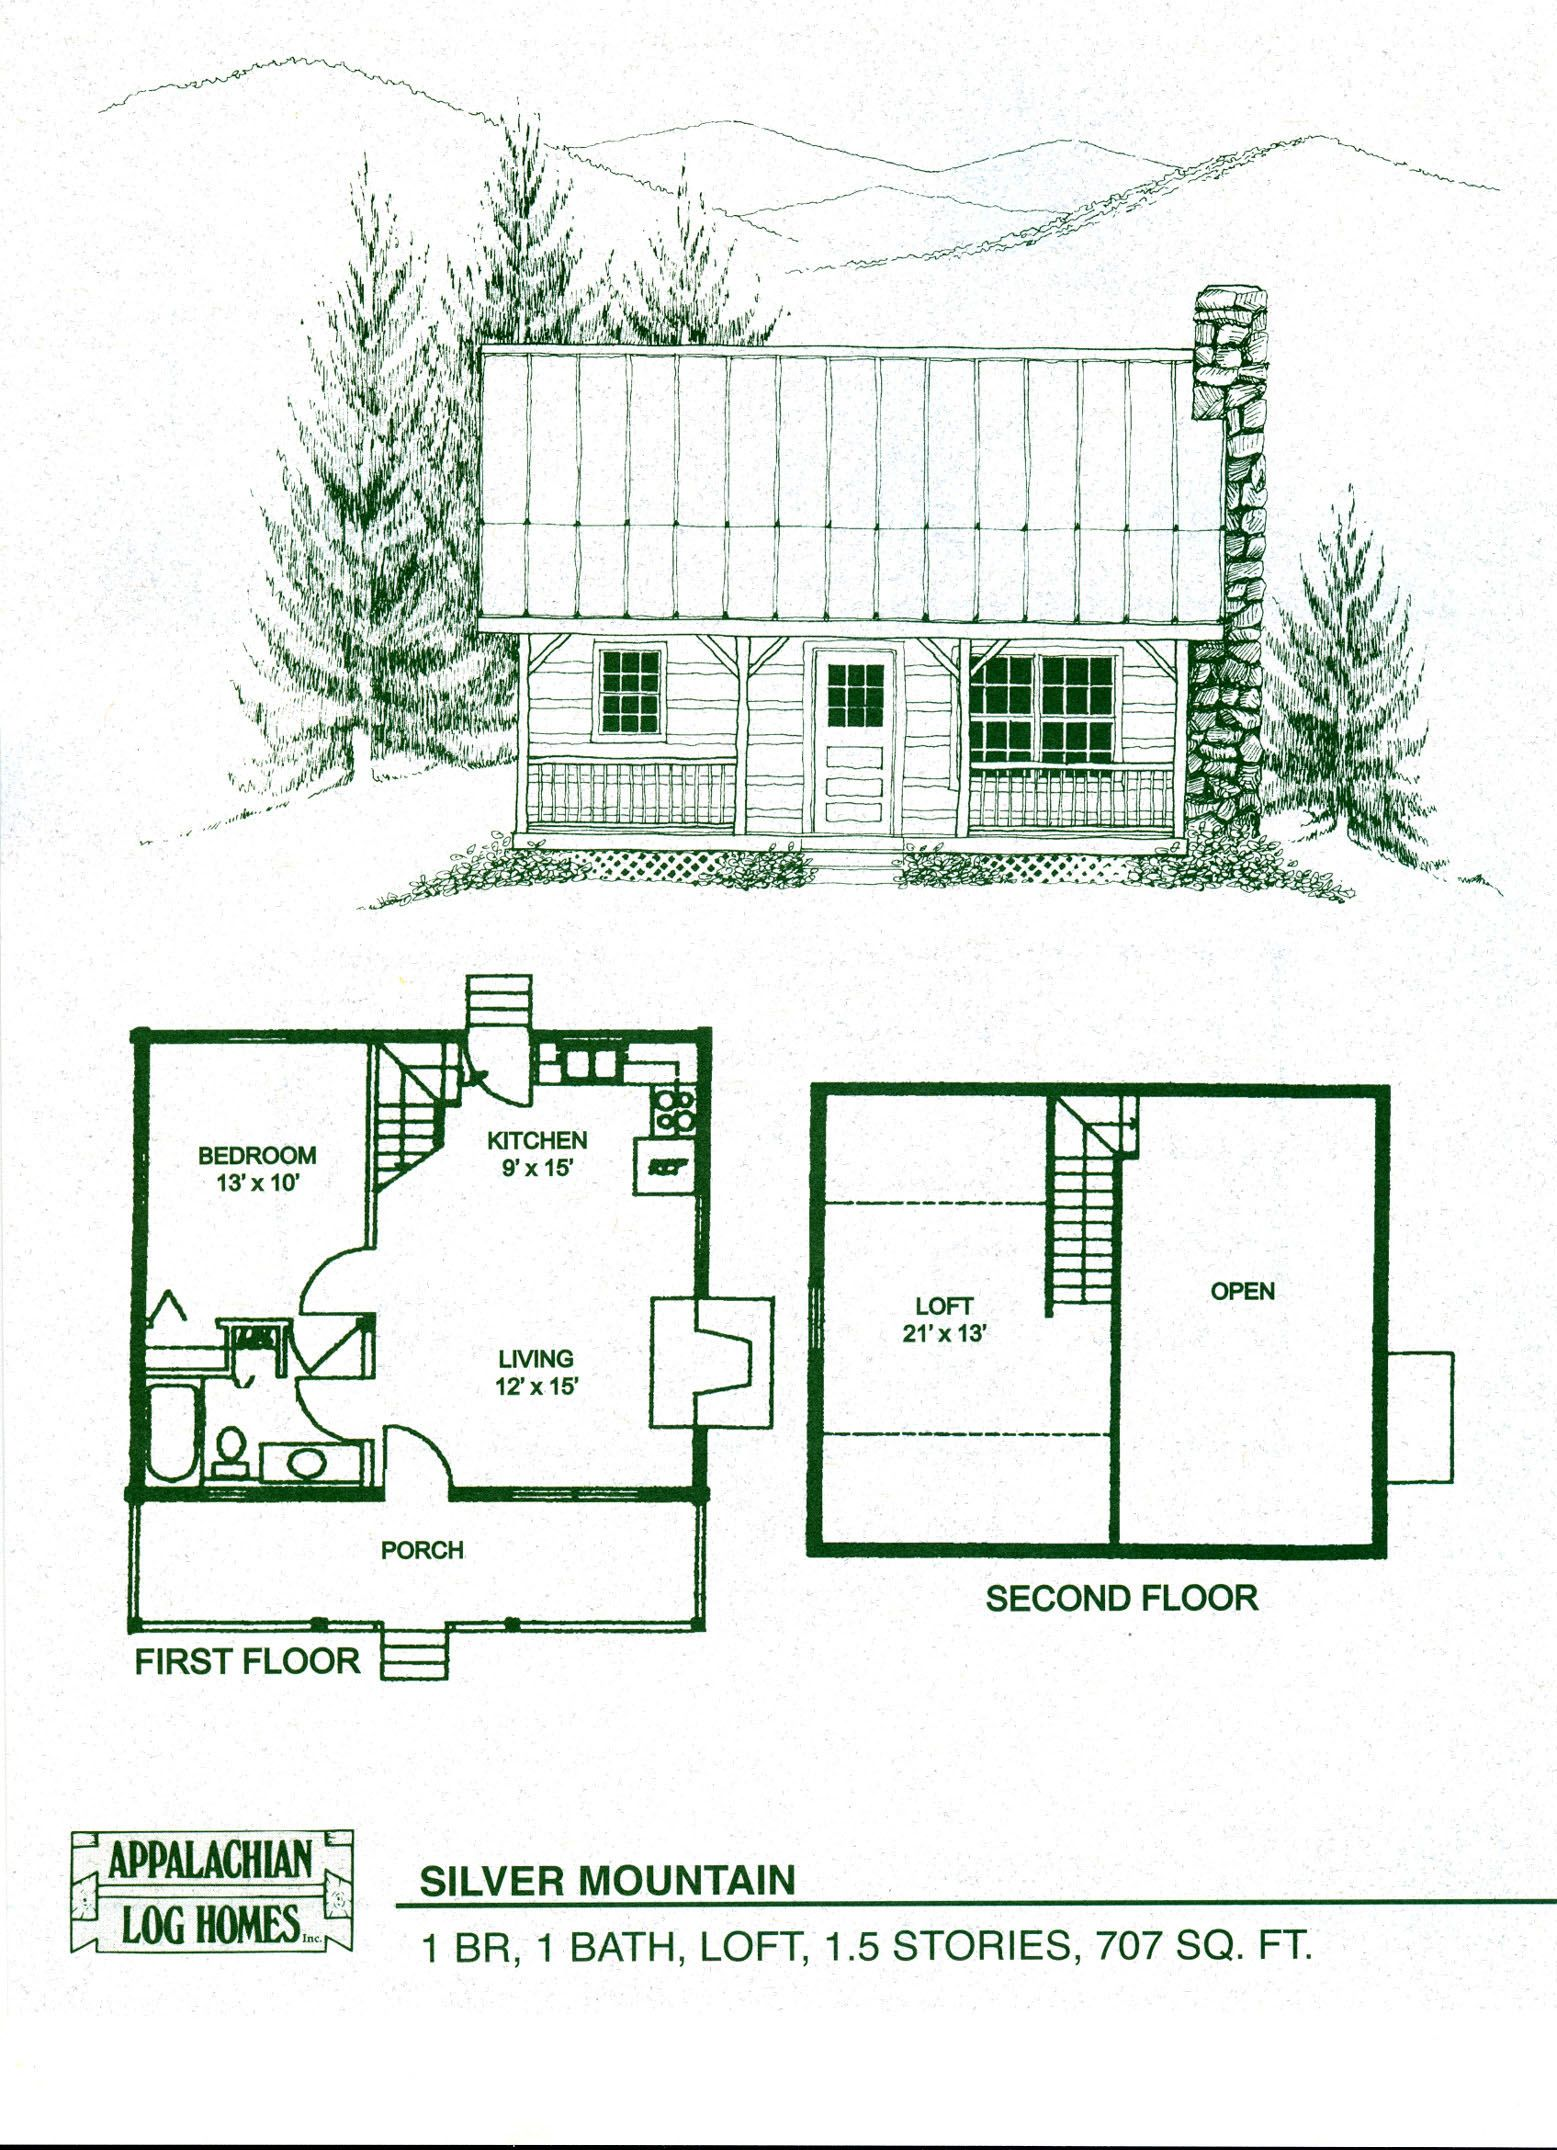 Small cabin with loft floorplans photos of the small cabin floor plans with loft